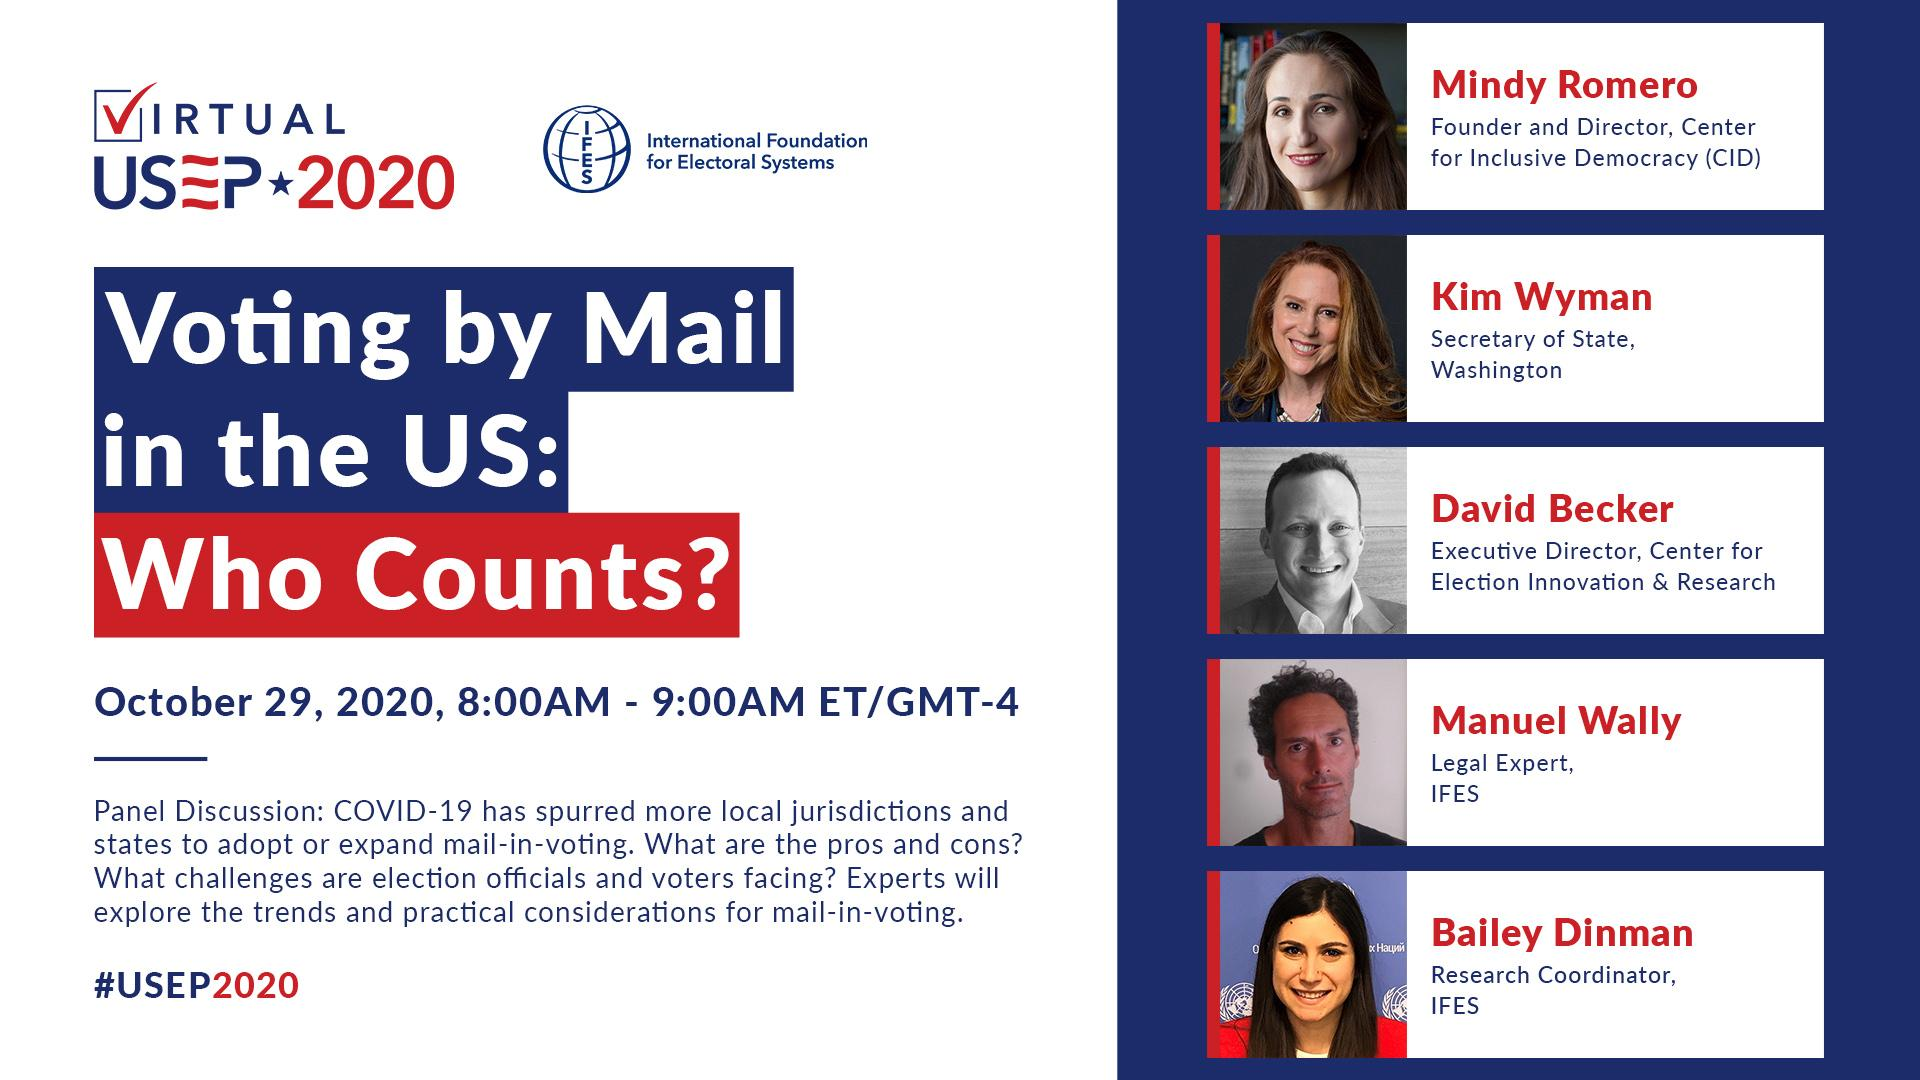 Voting by Mail in the U.S.: Who Counts?